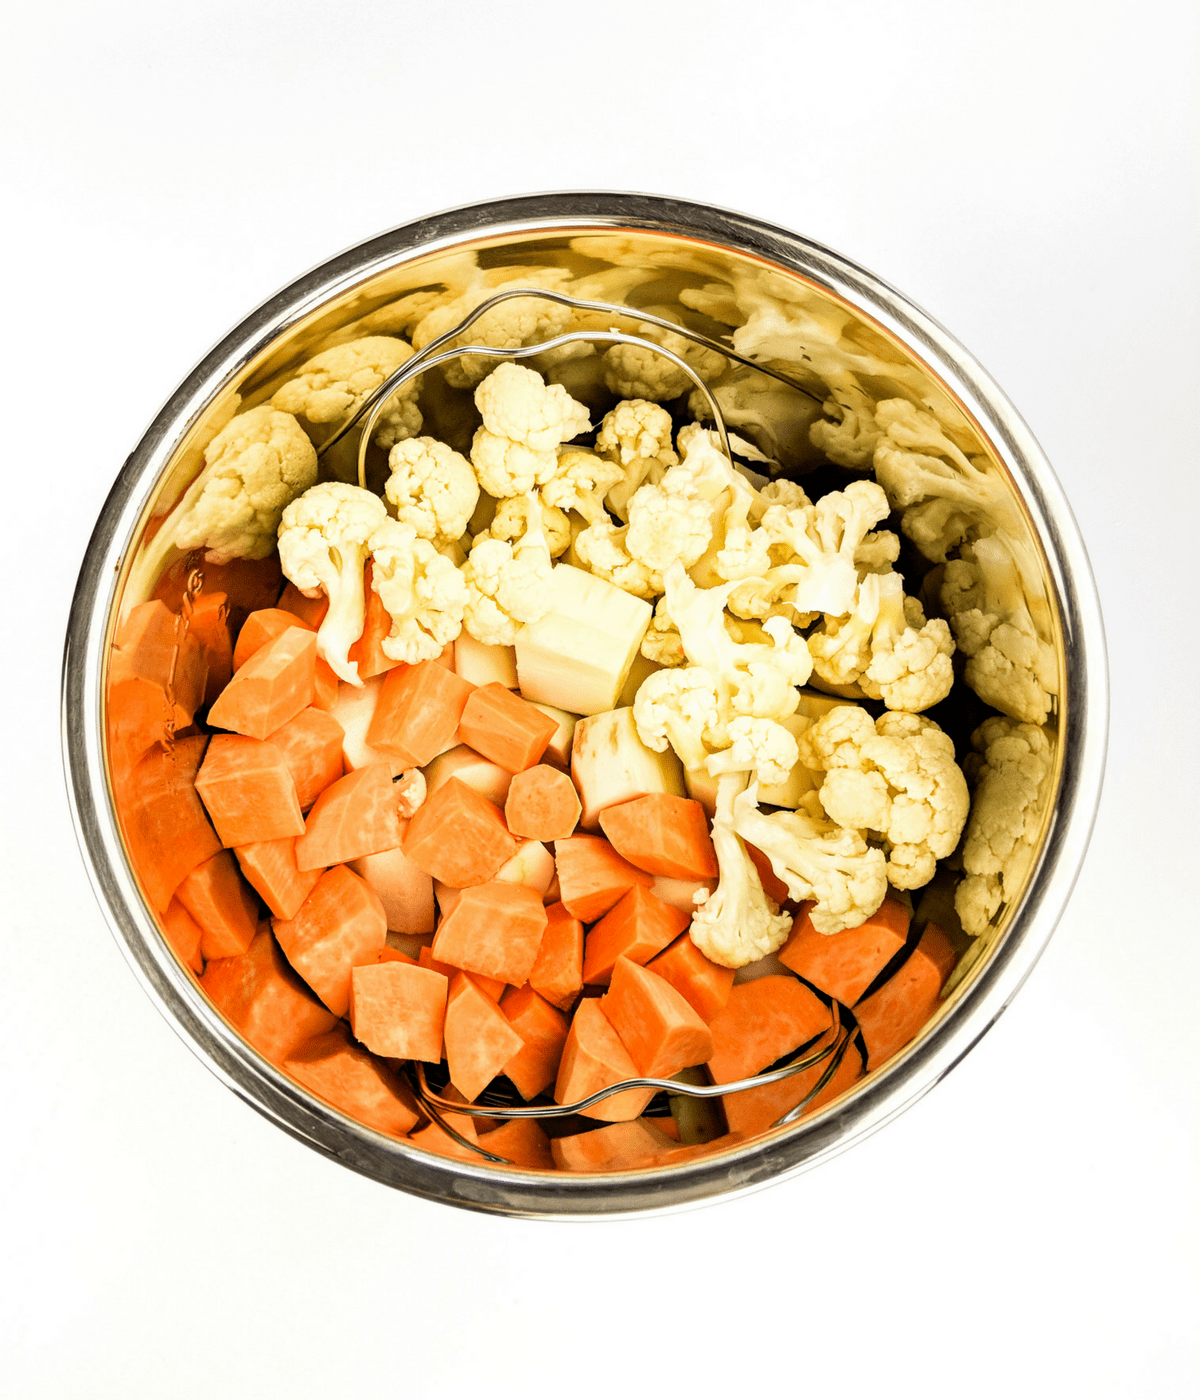 Discover three lectin free alternatives to mashed potatoes--learn how to cut, steam, mash, and season any root vegetable for delicious lectin free comfort food!